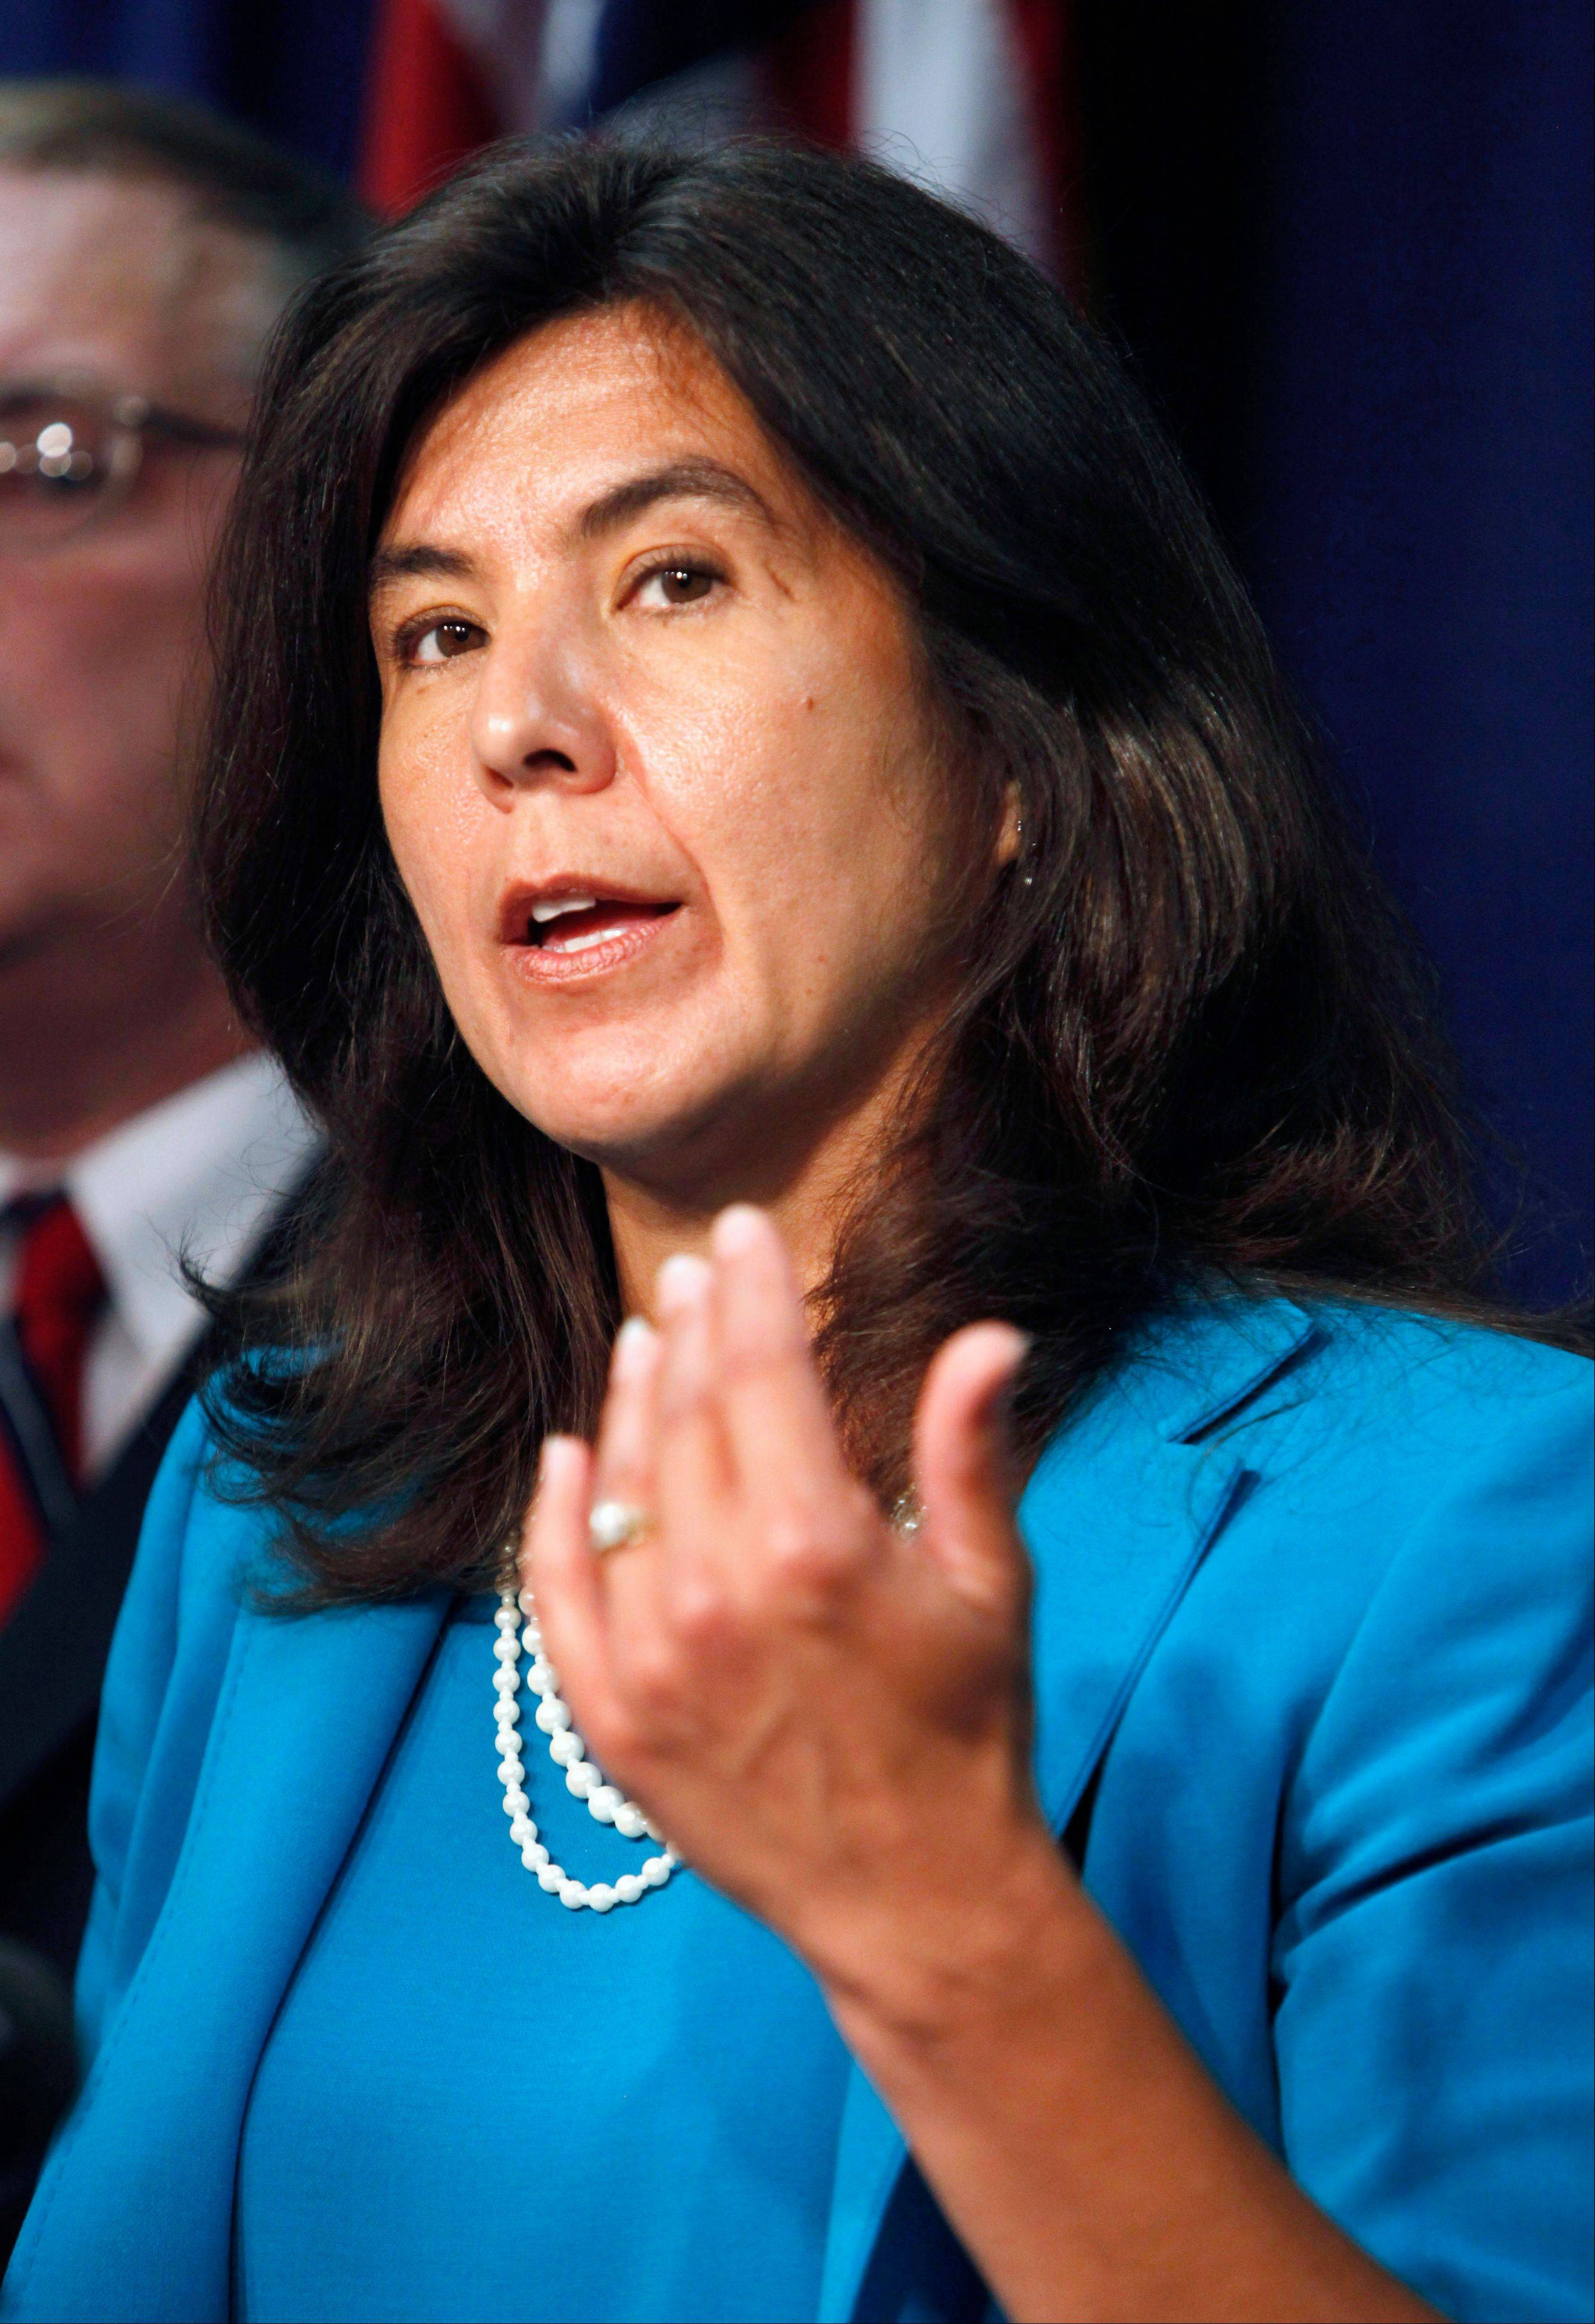 The U.S. Supreme Court on Monday rejected an appeal by Cook County State�s Attorney Anita Alvarez to allow enforcement of a law aimed at stopping people from recording police officers on the job.